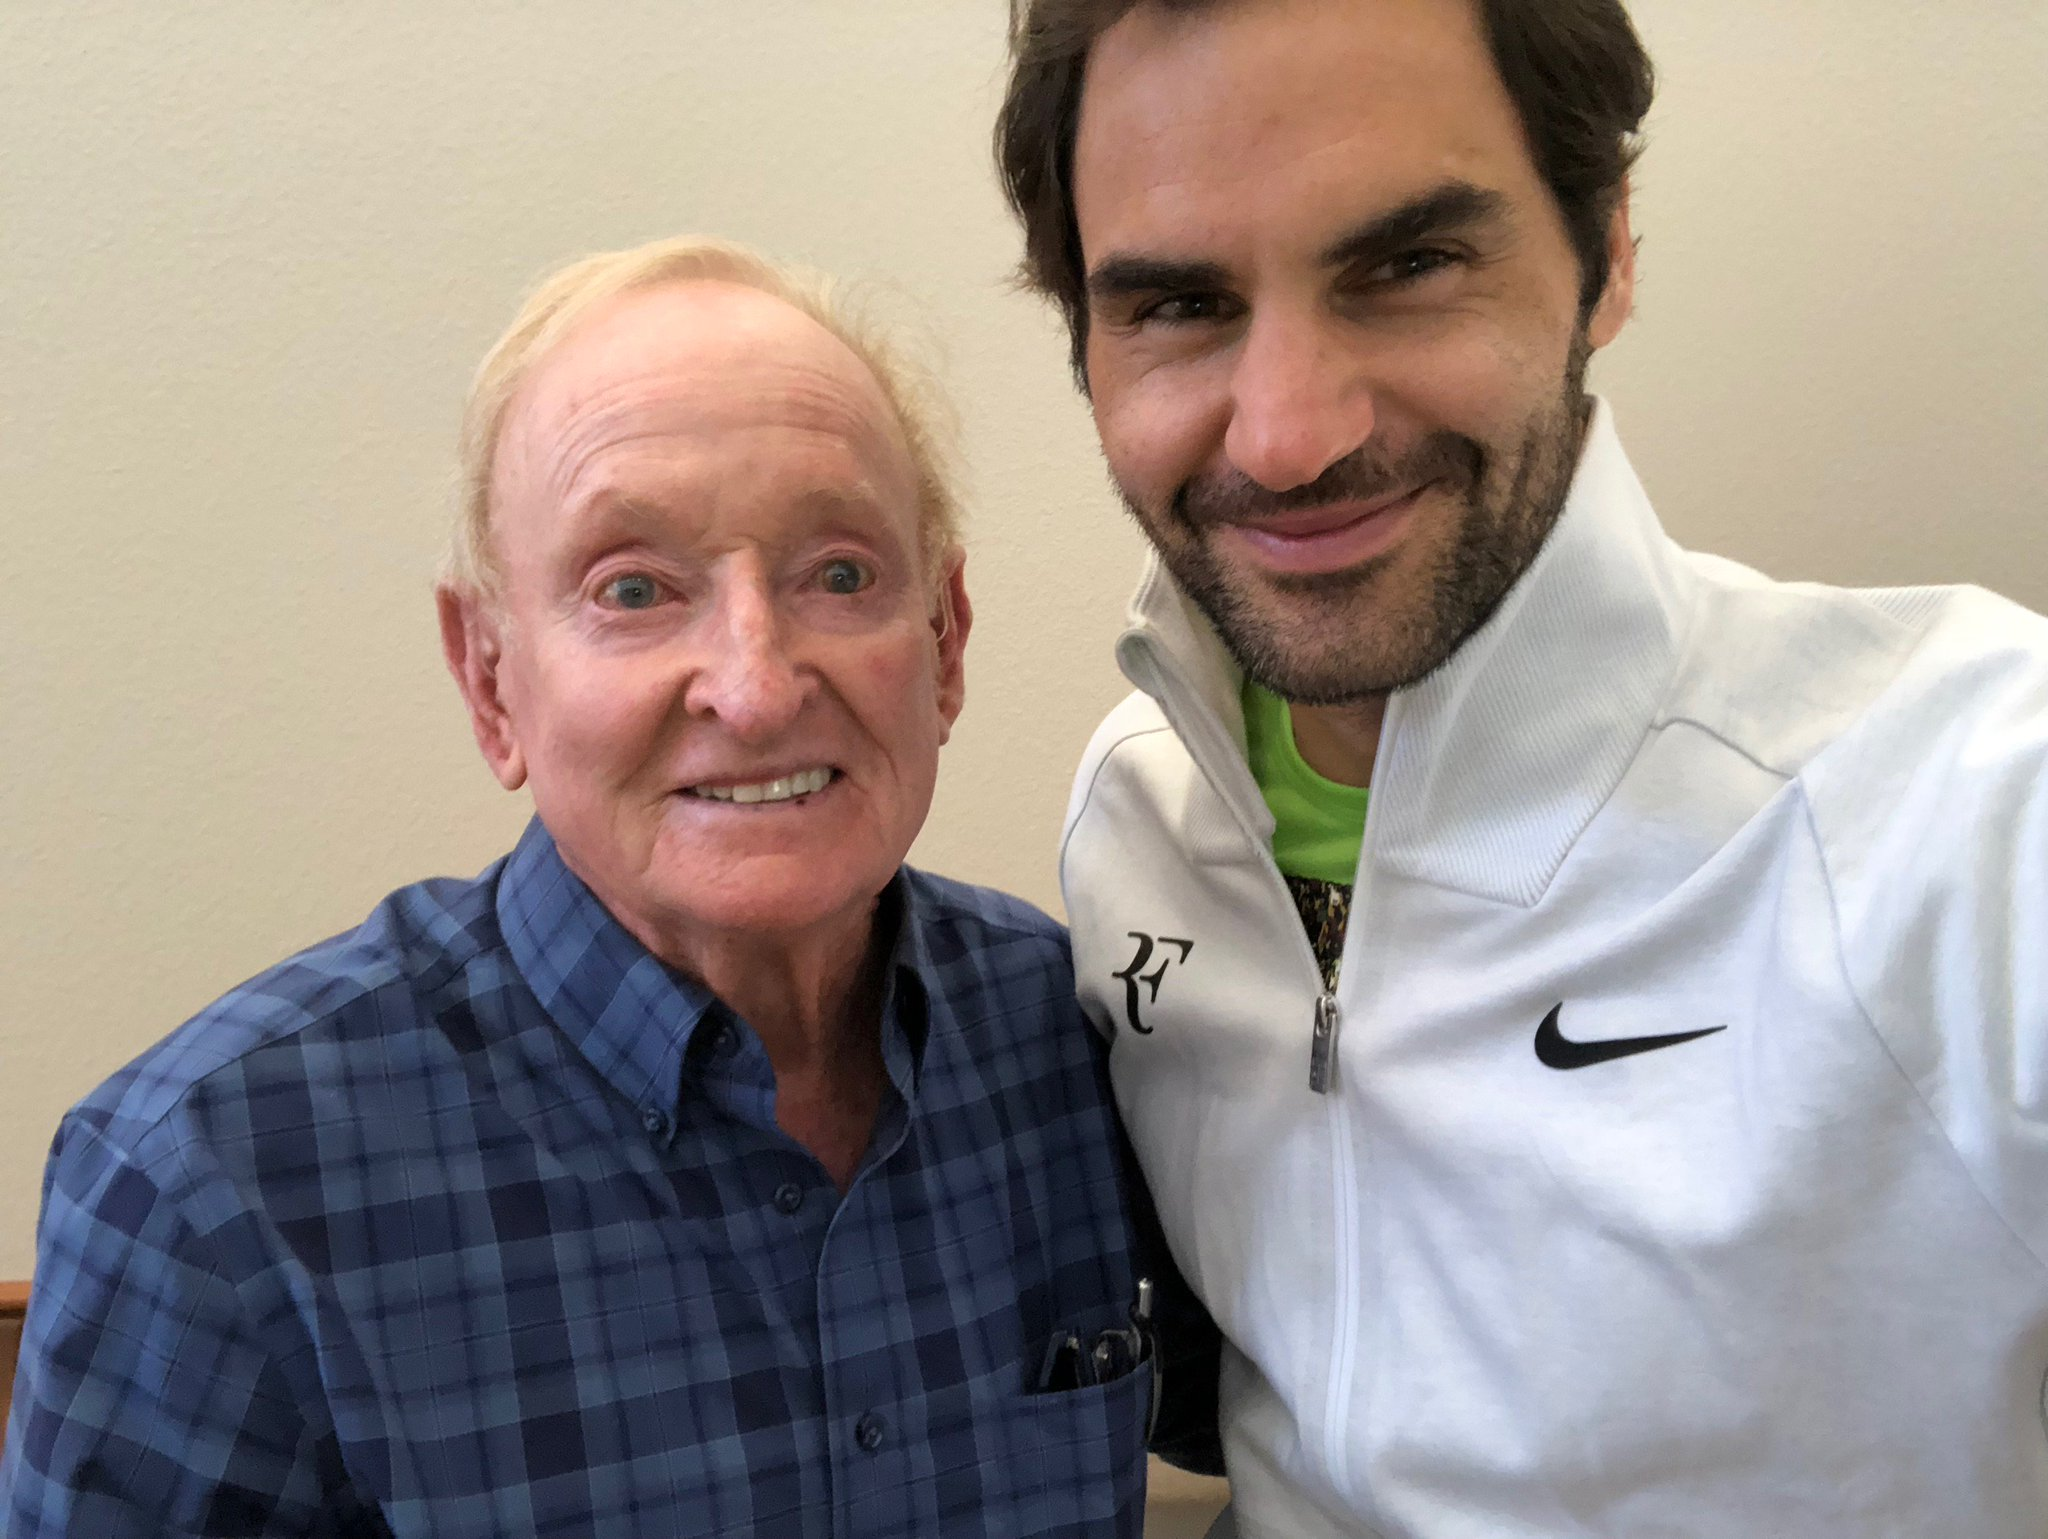 Are you ready for Chicago������?@nickkyrgios @rodlaver #LaverCup #TeamEurope https://t.co/Izp2UasglU